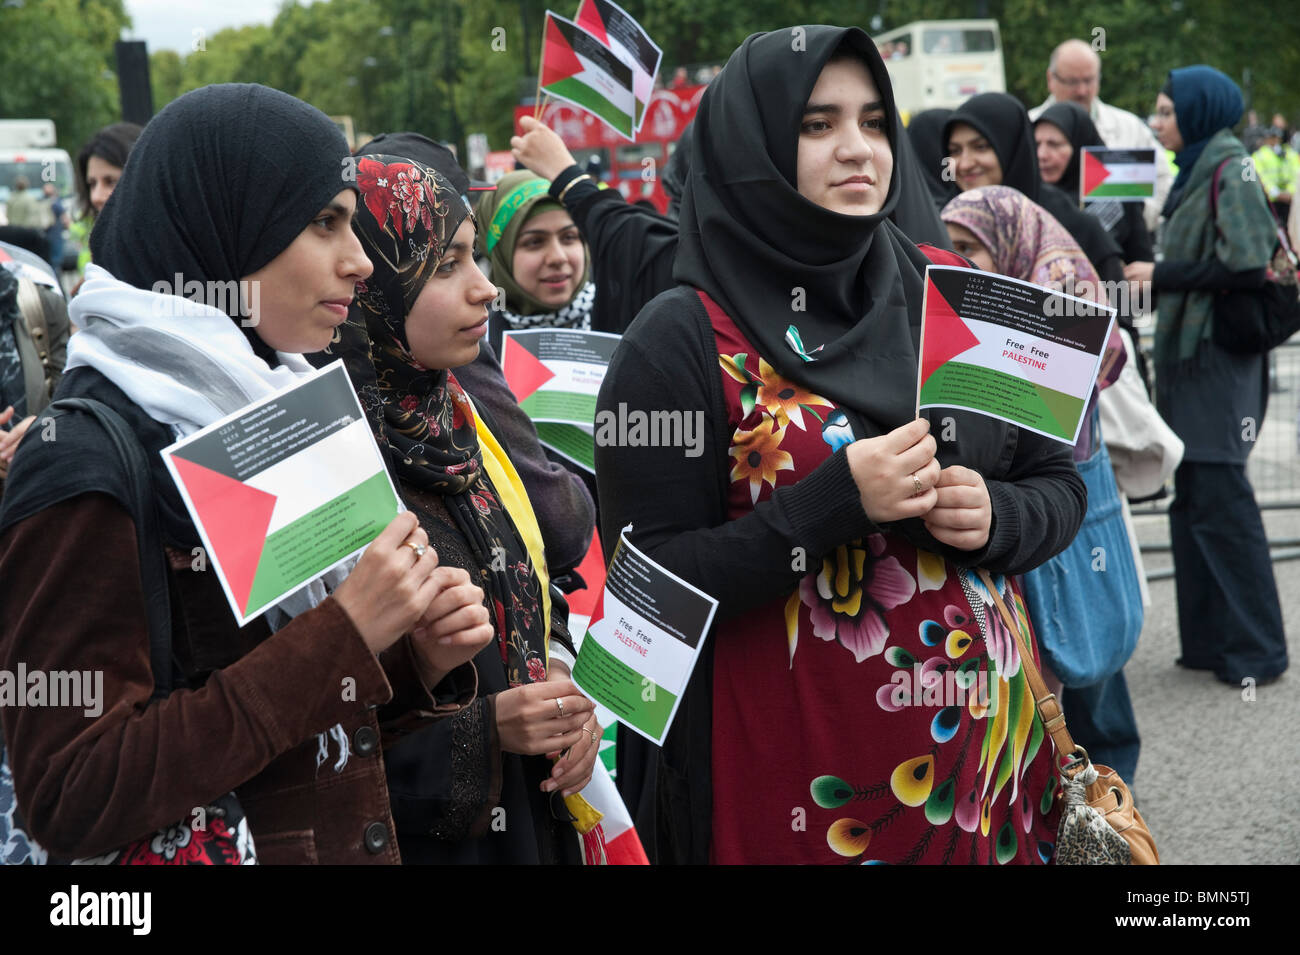 Young Muslim women with Palestinian flags at start of Al Quds Day (Jerusalem Day) march in London - Stock Image